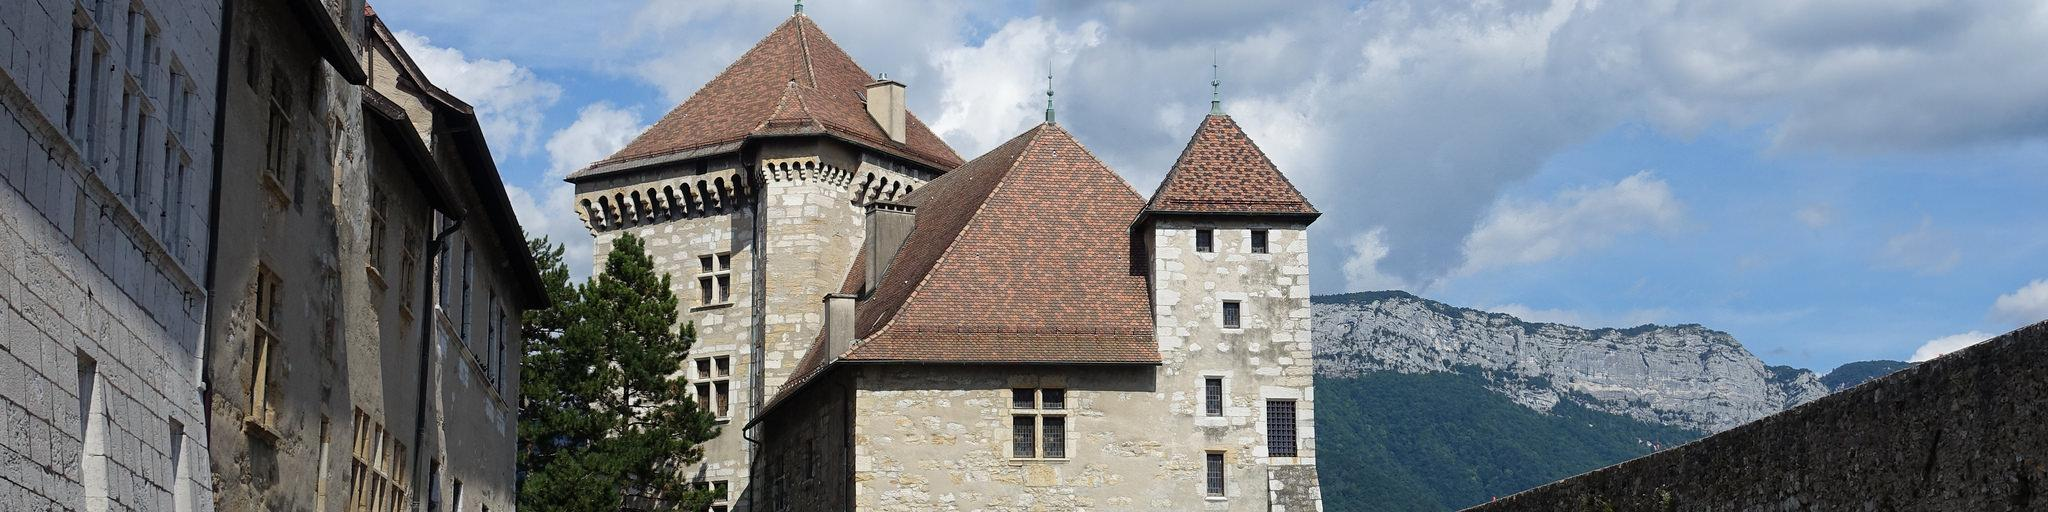 The courtyard of the Château d'Annecy with the square buildings of the castle in the foreground and mountains in the background